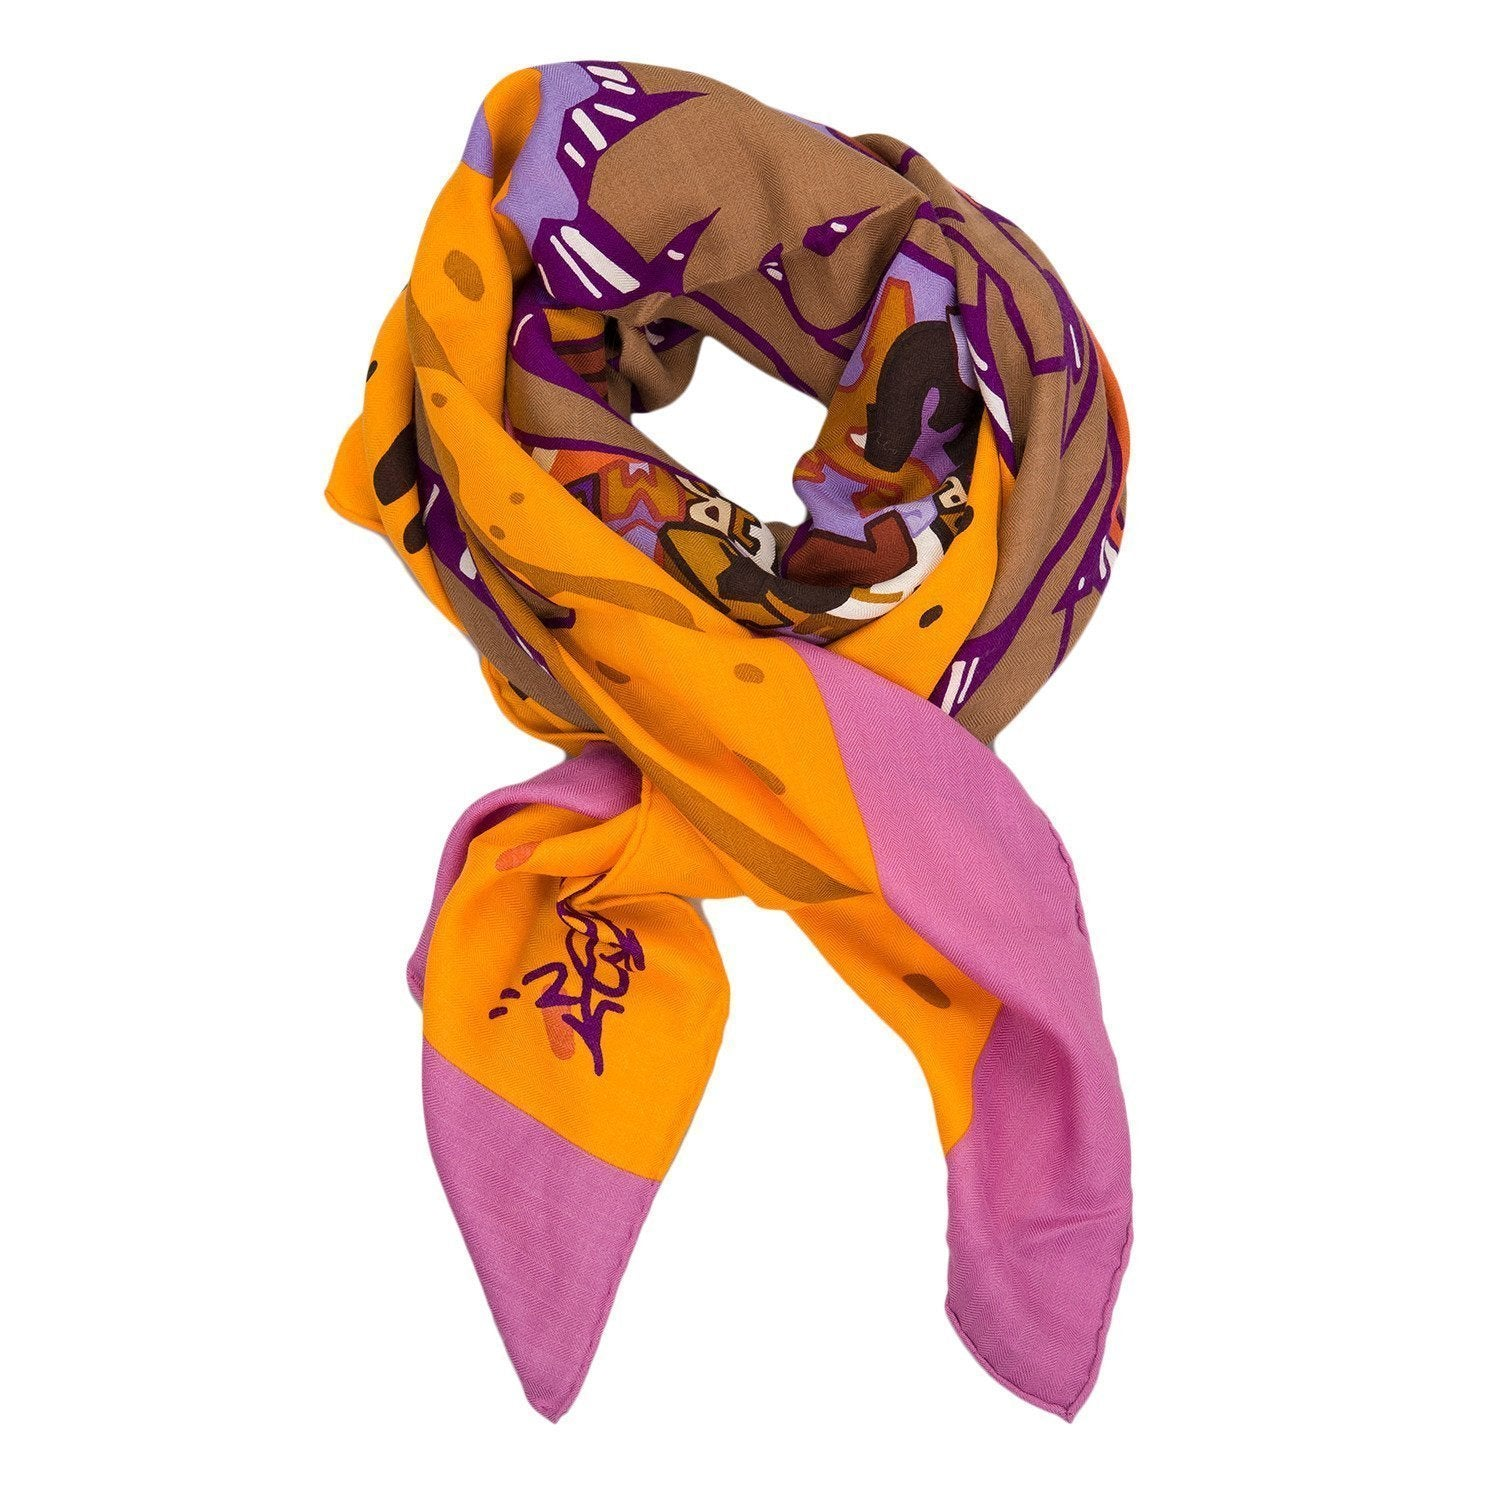 Hermes Graff Graffiti Cashmere And Silk Shawl 140Cm Scarves